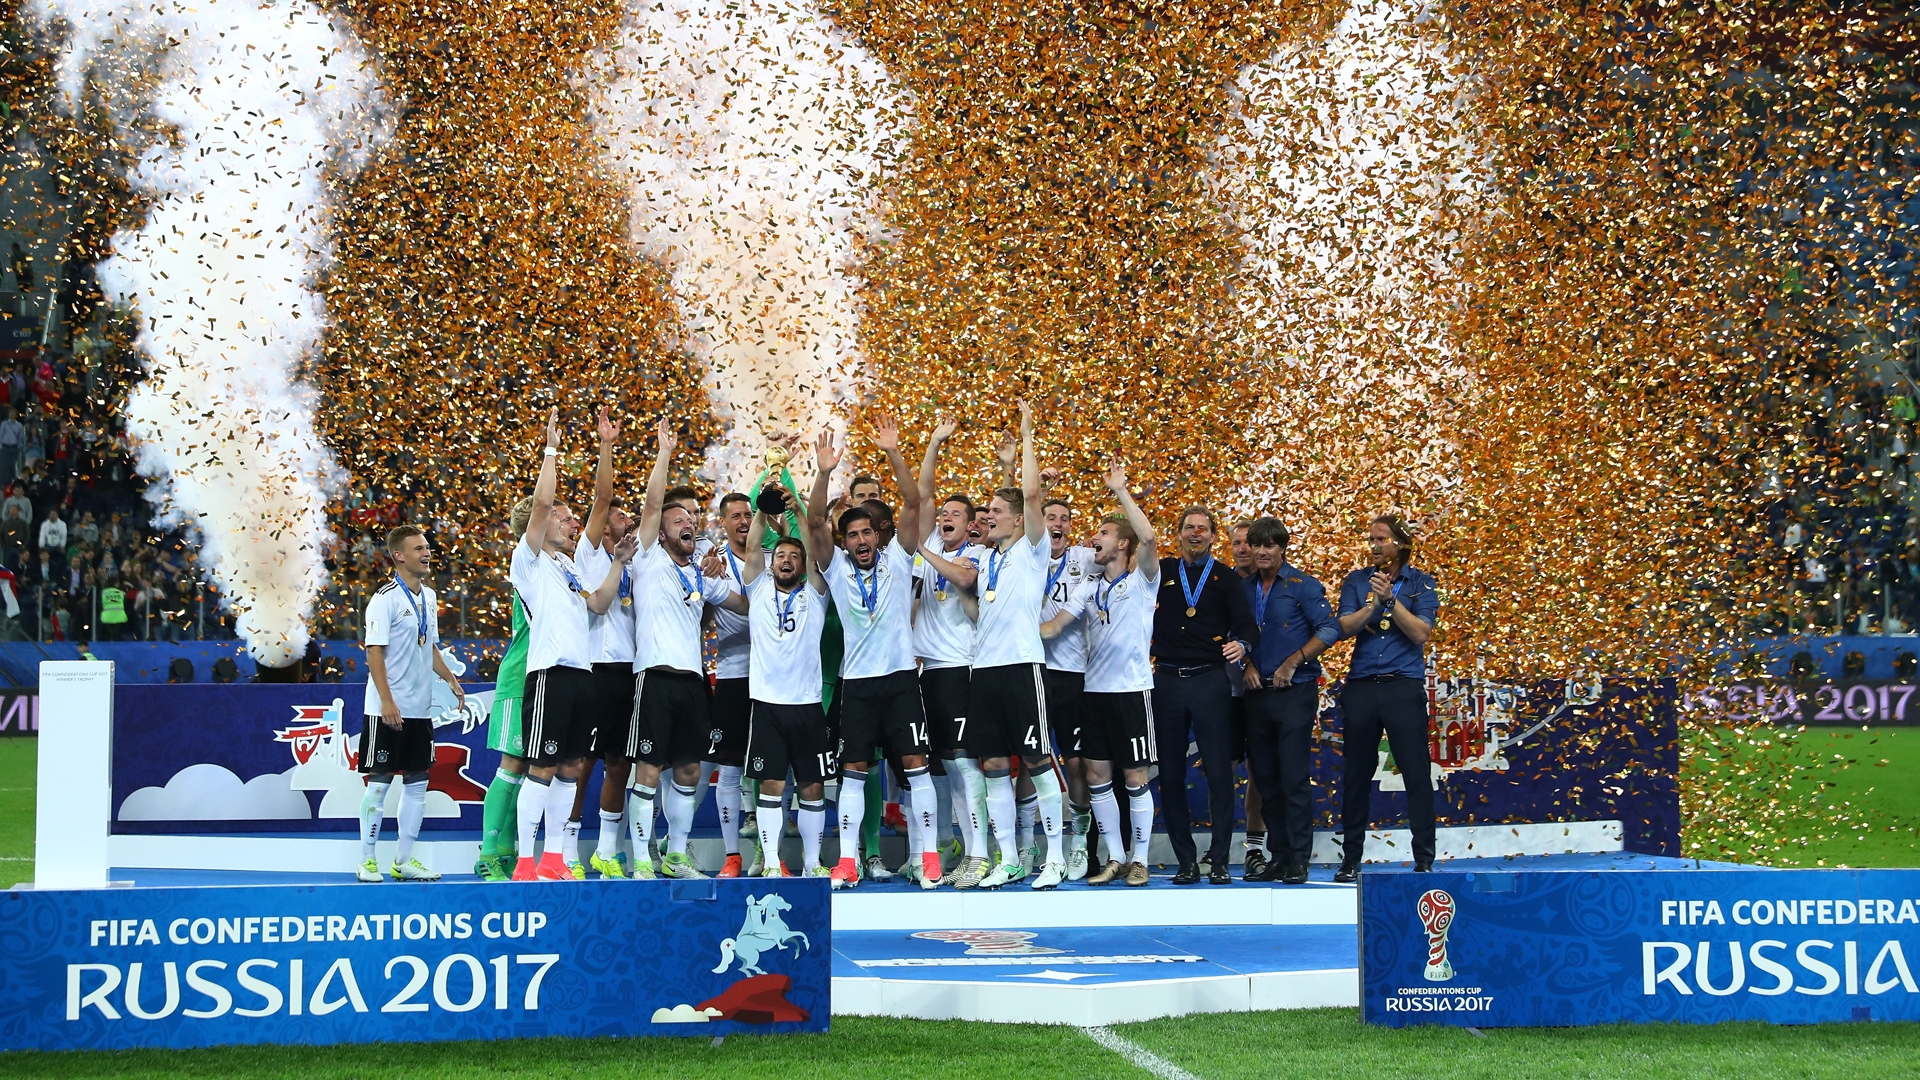 The Germans never seemed to face many problems in winning the Confederations Cup trophy.